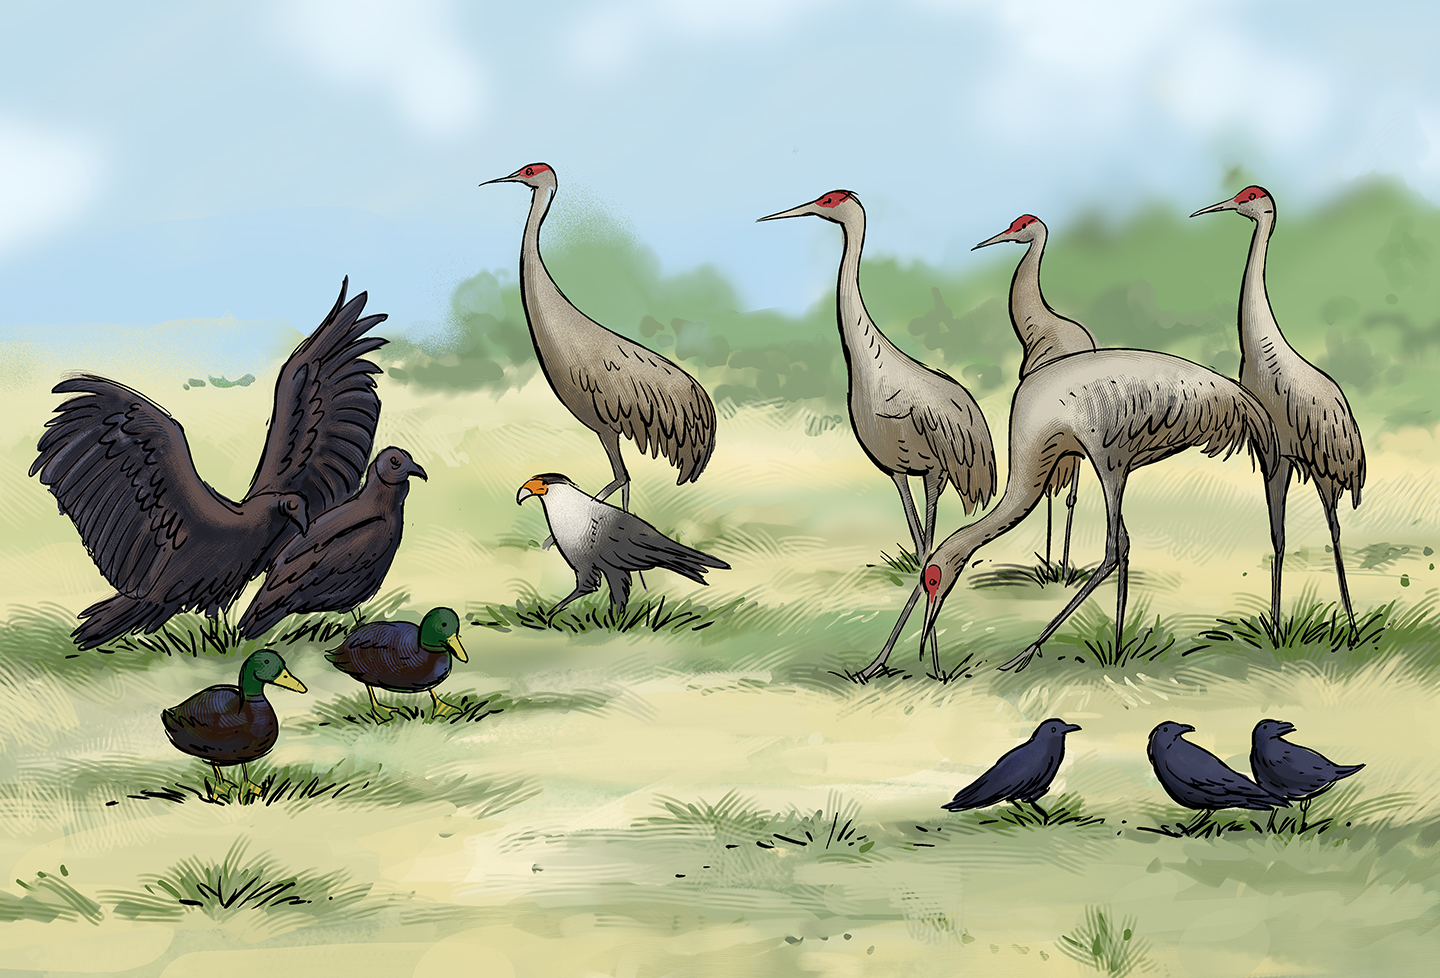 A field of a dozen birds of various types: there are sandhill cranes, mallards, black vultures, crows, and even a single hawk.